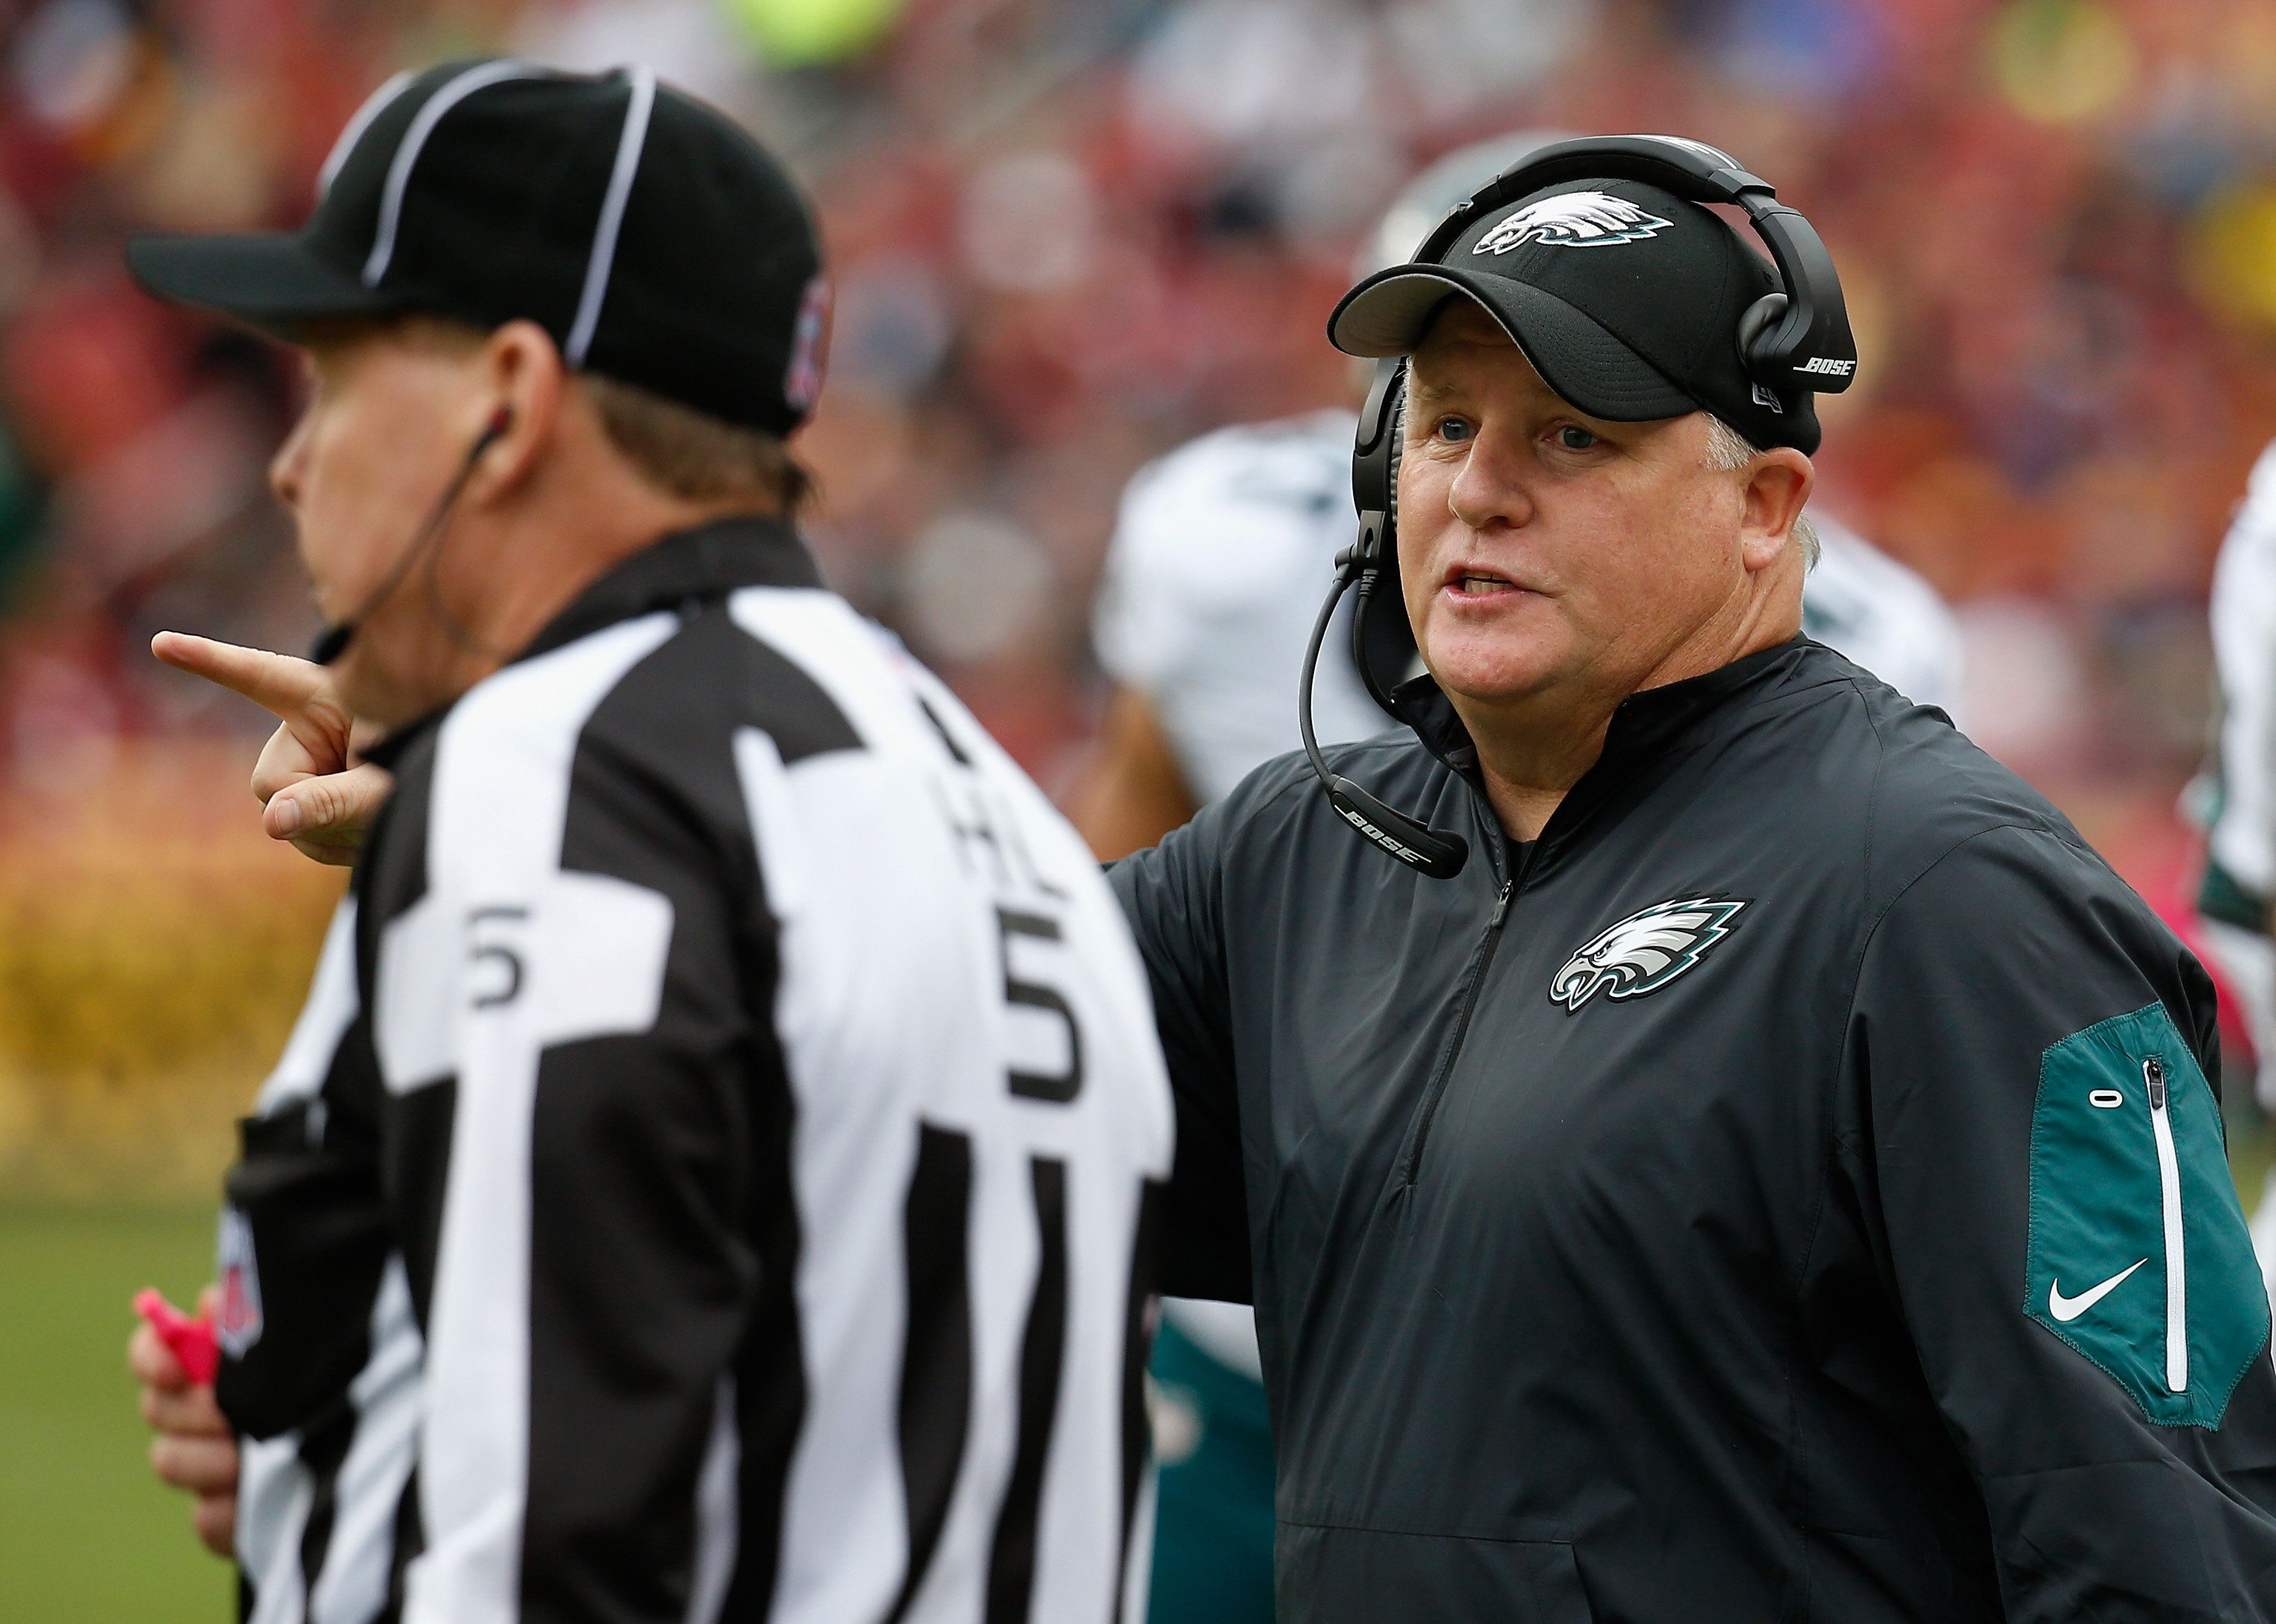 LANDOVER, MD - OCTOBER 04: Head coach Chip Kelly of the Philadelphia Eagles talks with an official during the second half of the Eagles 23-20 loss to the Washington Redskins at FedExField on October 4, 2015 in Landover, Maryland.  (Photo by Rob Carr/Getty Images)